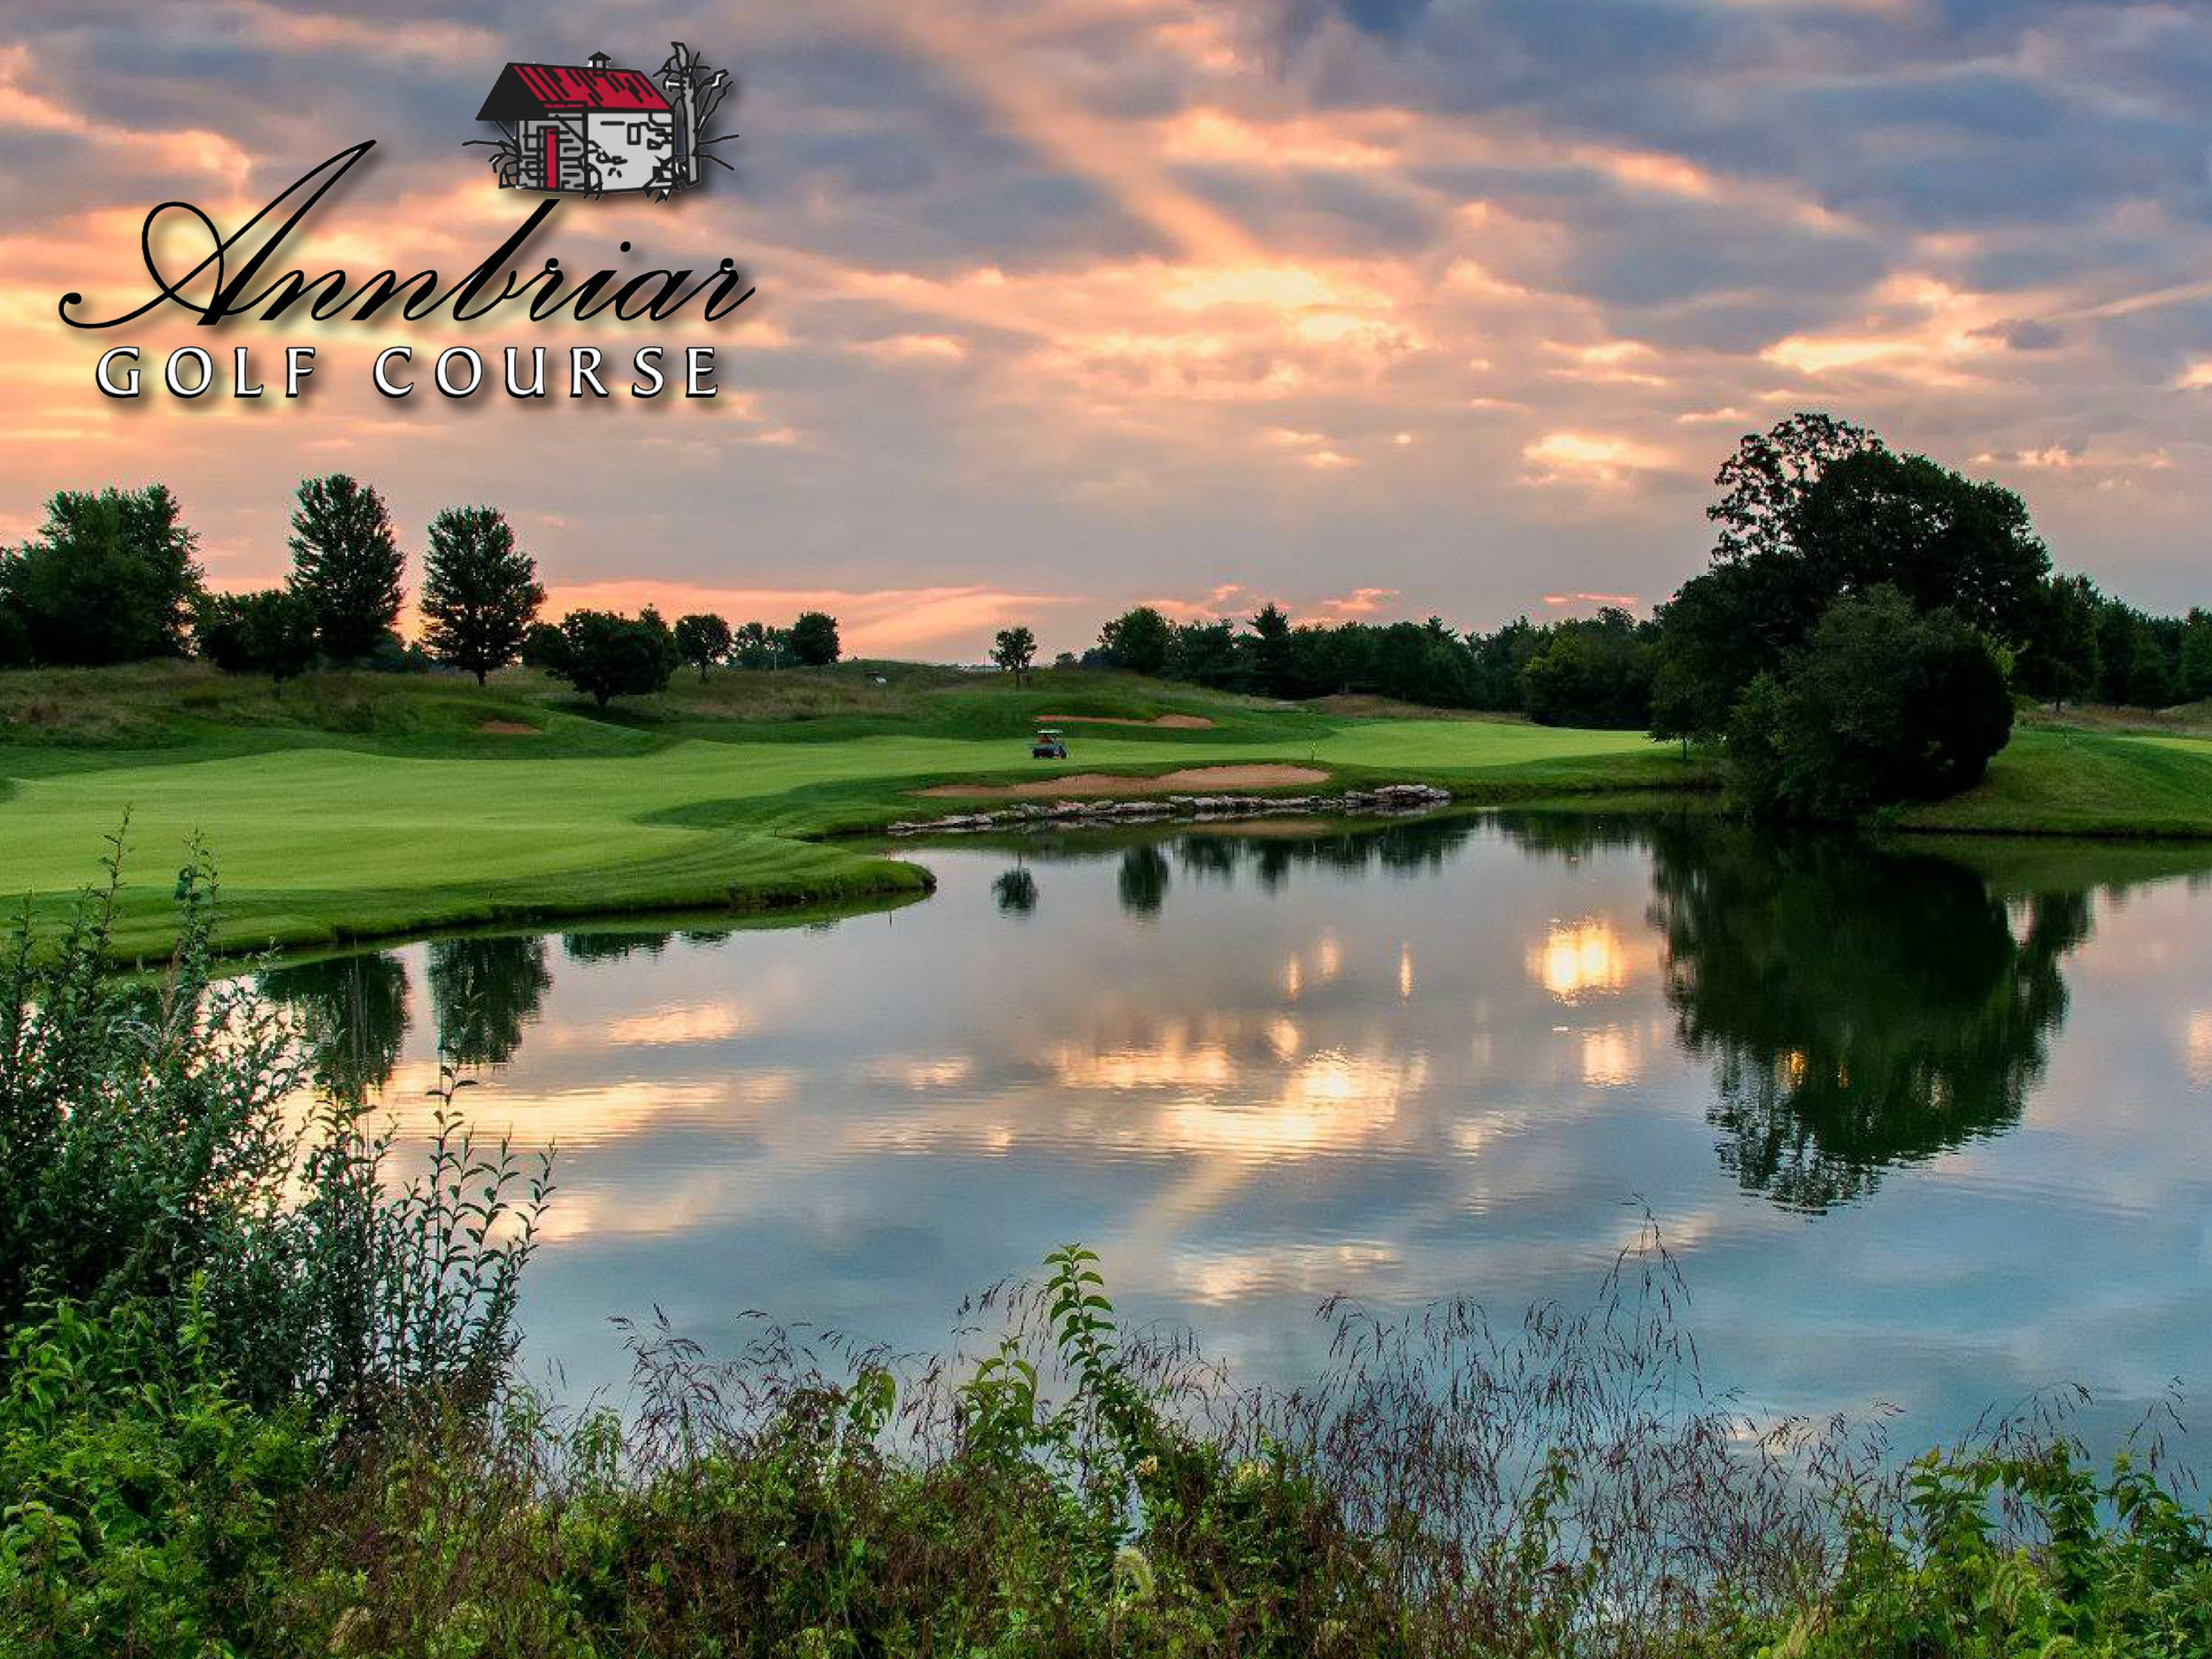 Benefiting Local Veterans - HERO-AM at AnnbriarSaturday, July 6th$600/team